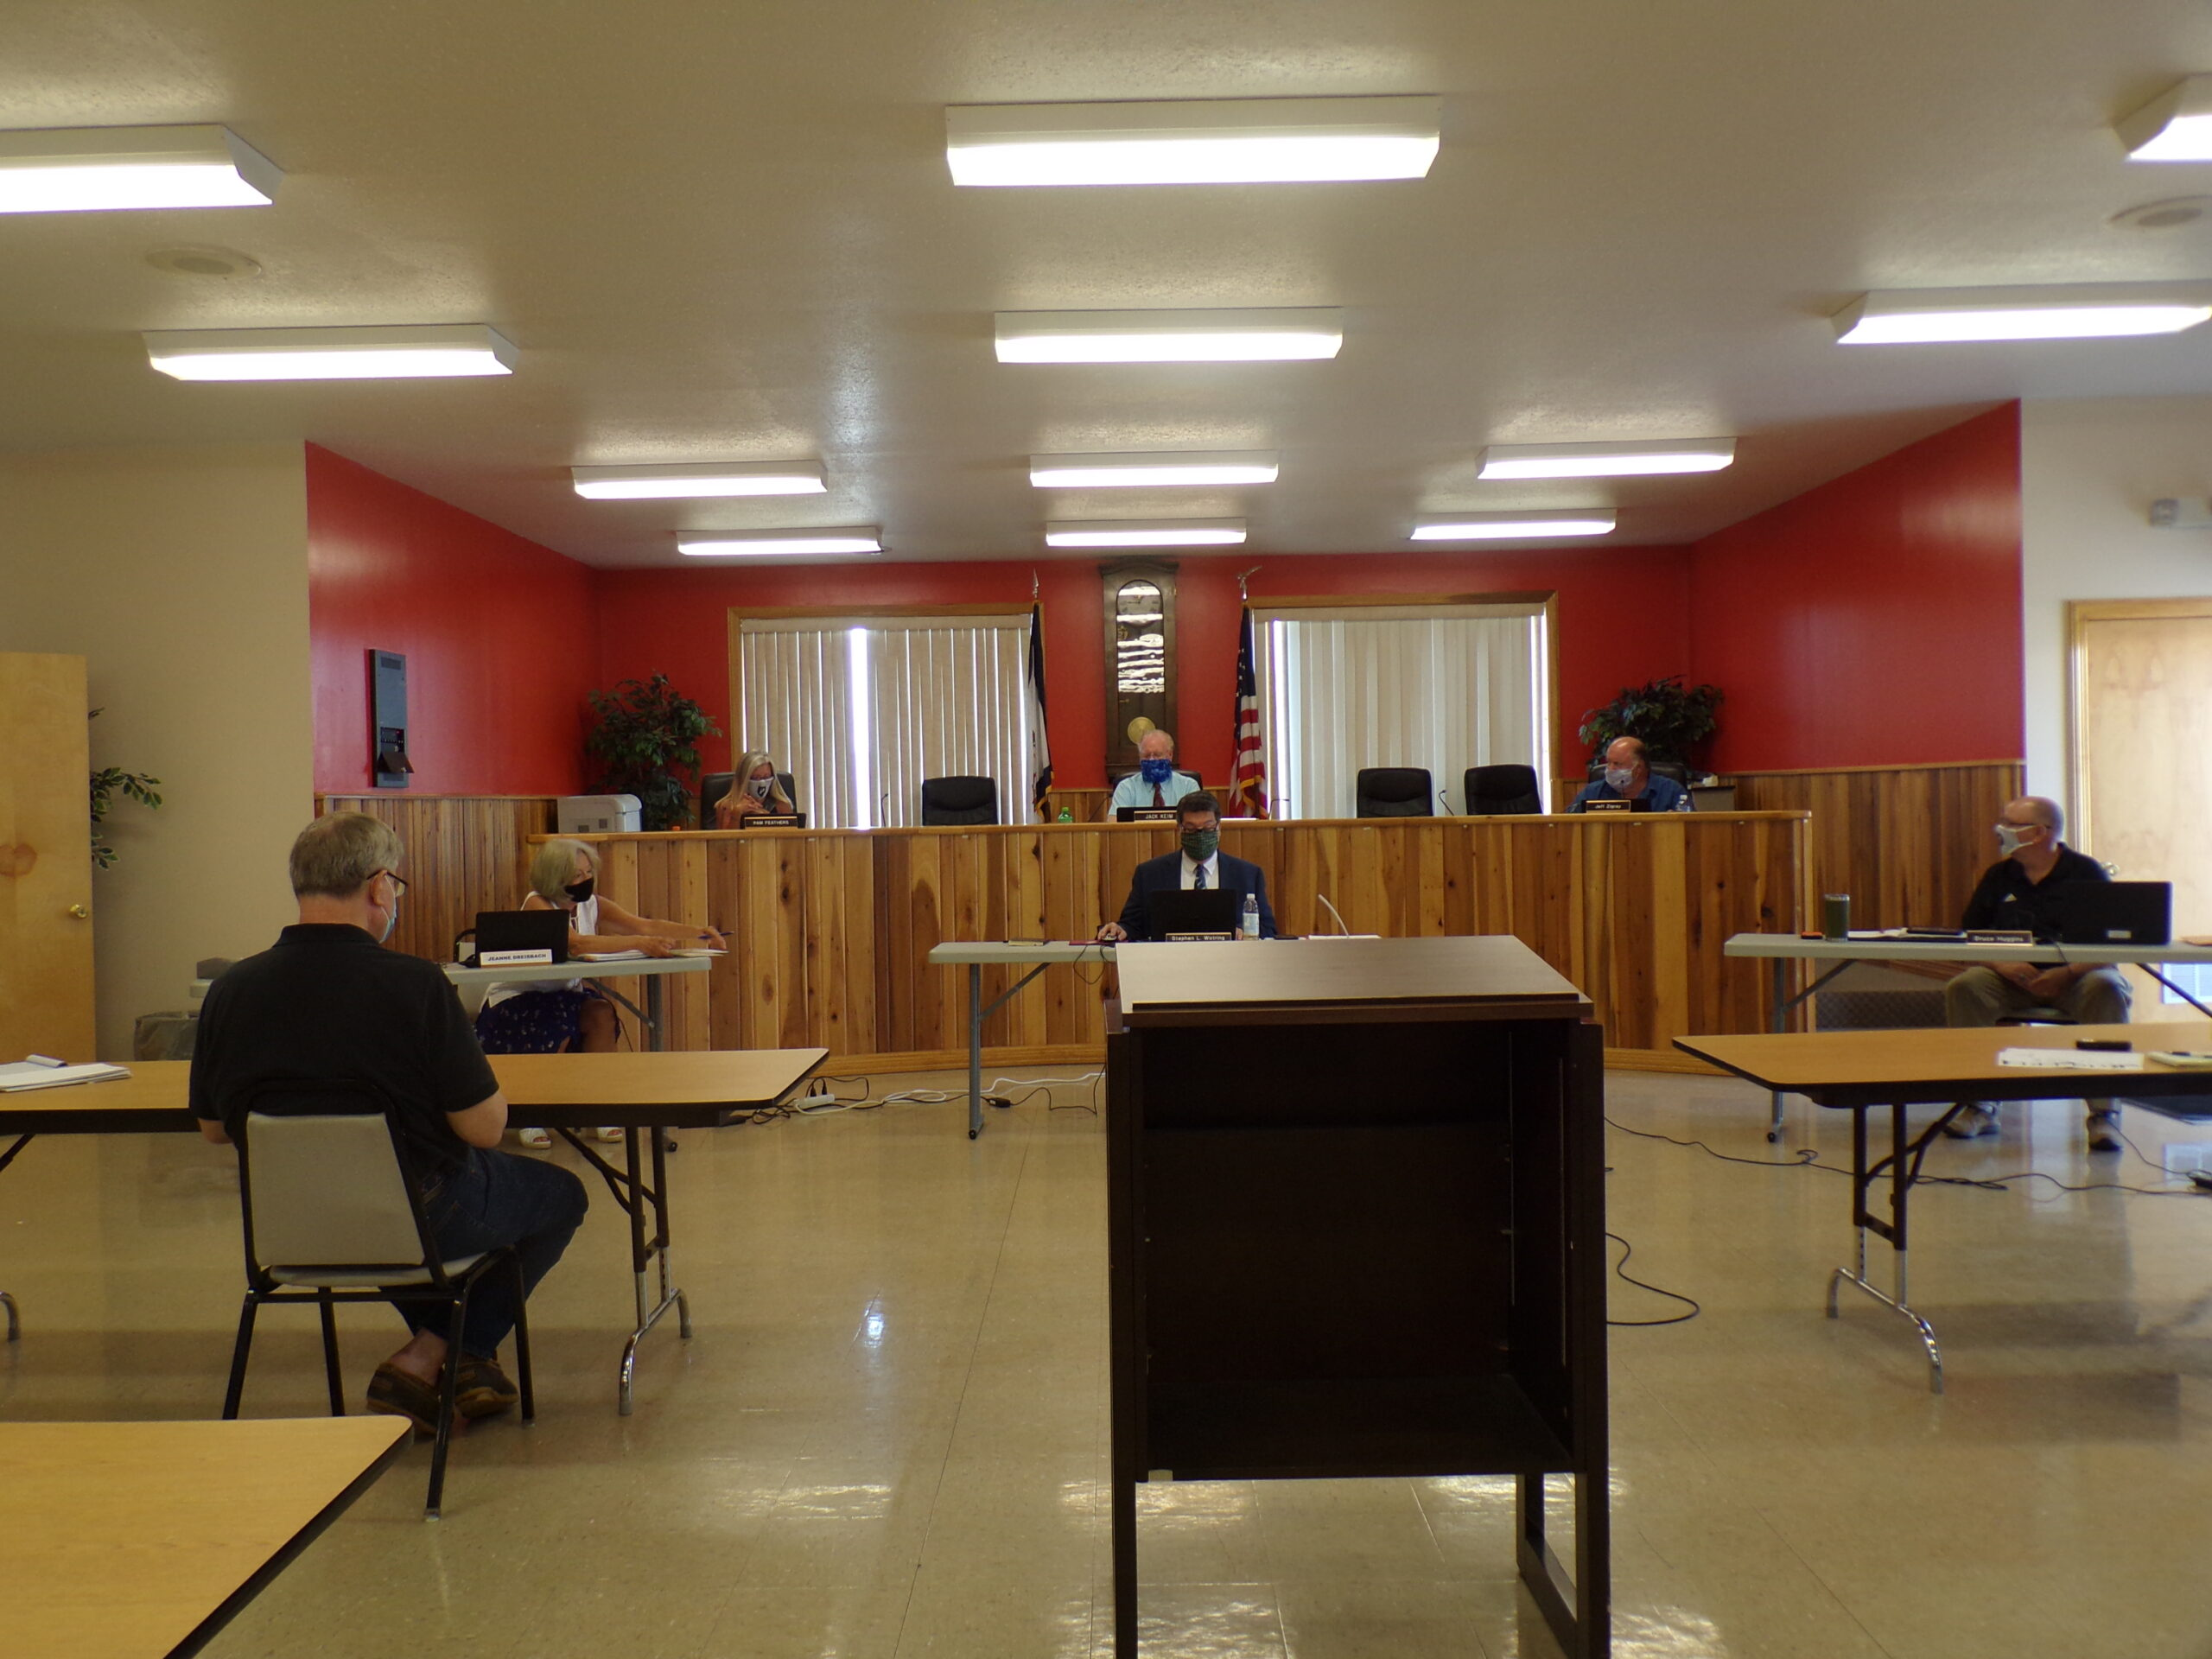 The Preston County Board of Education meets on July 6.